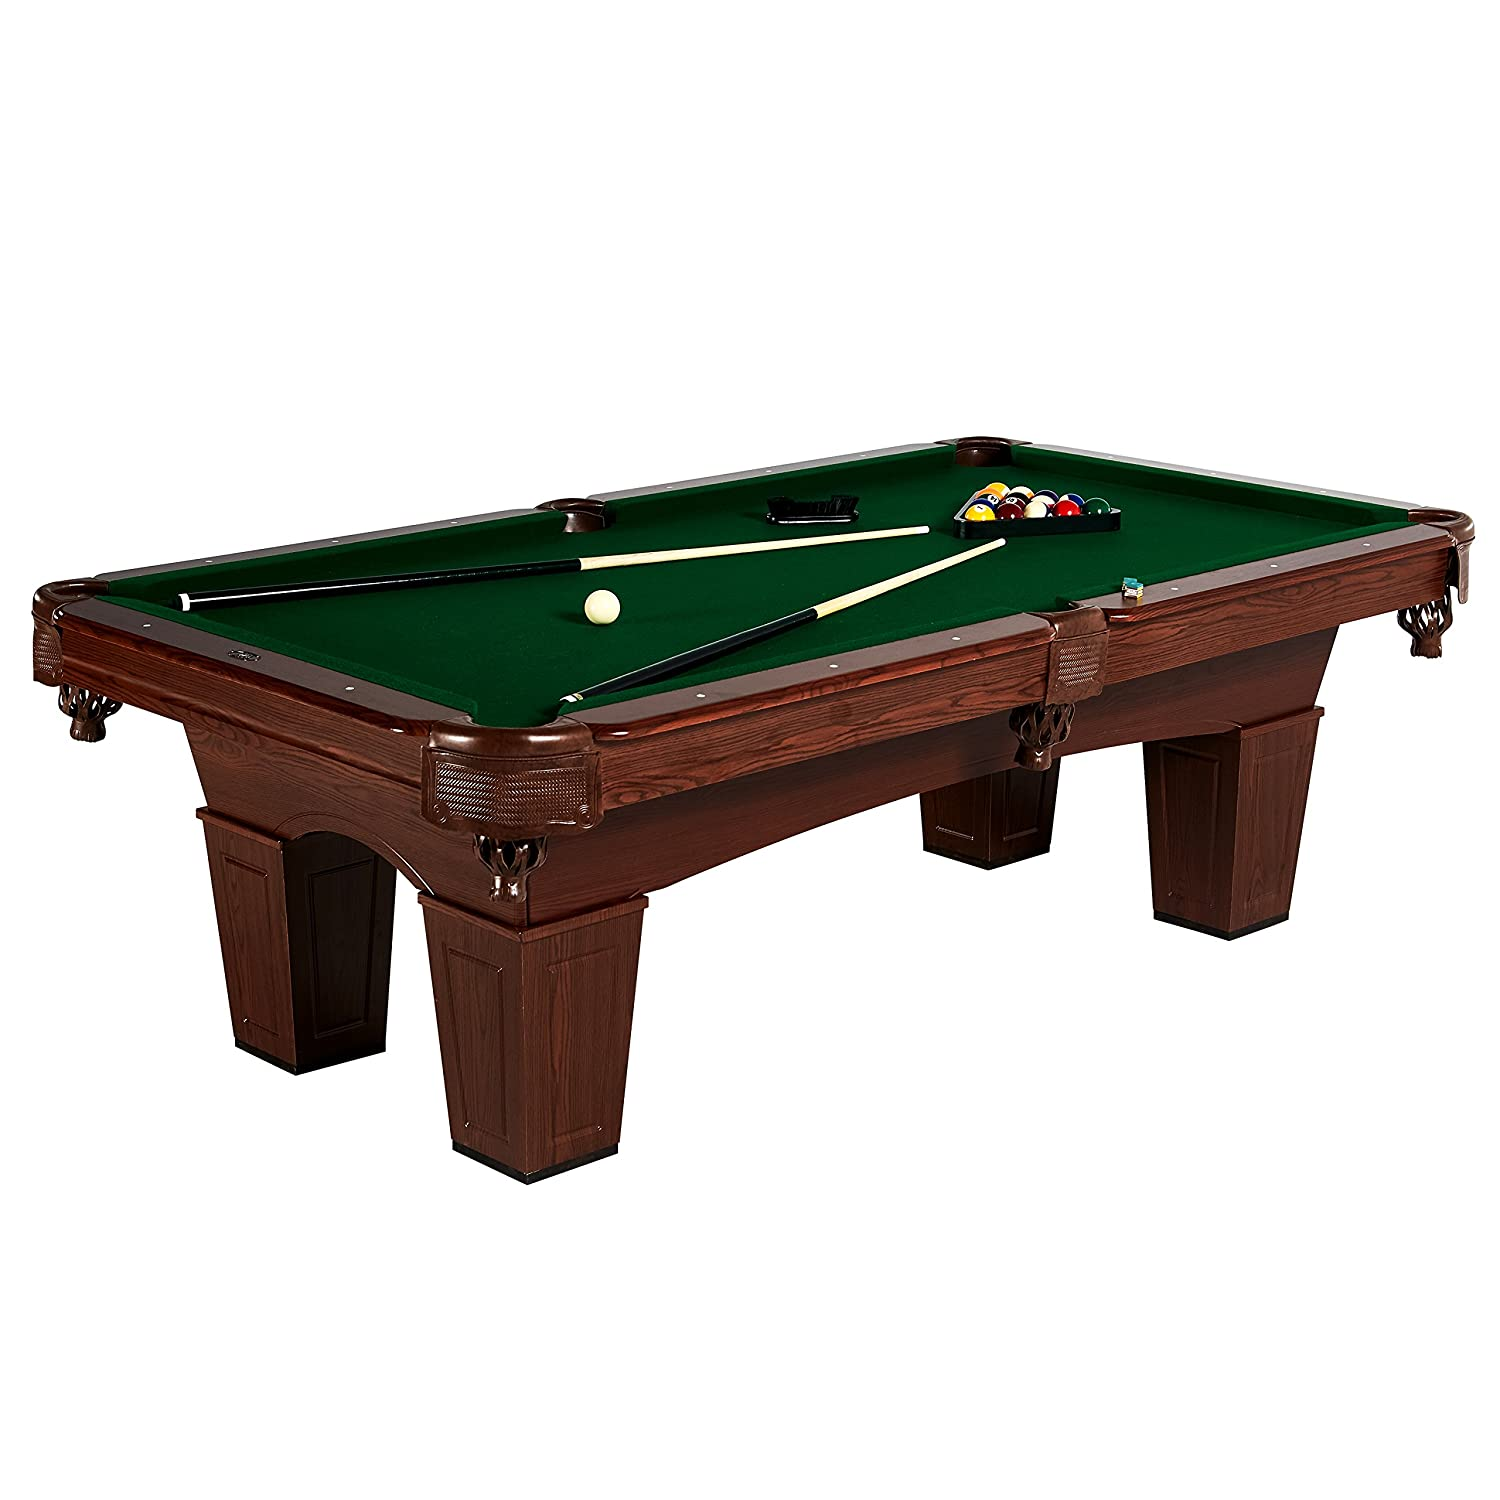 MD Sports Crestmont Billiard Pool Table Black Friday Deals